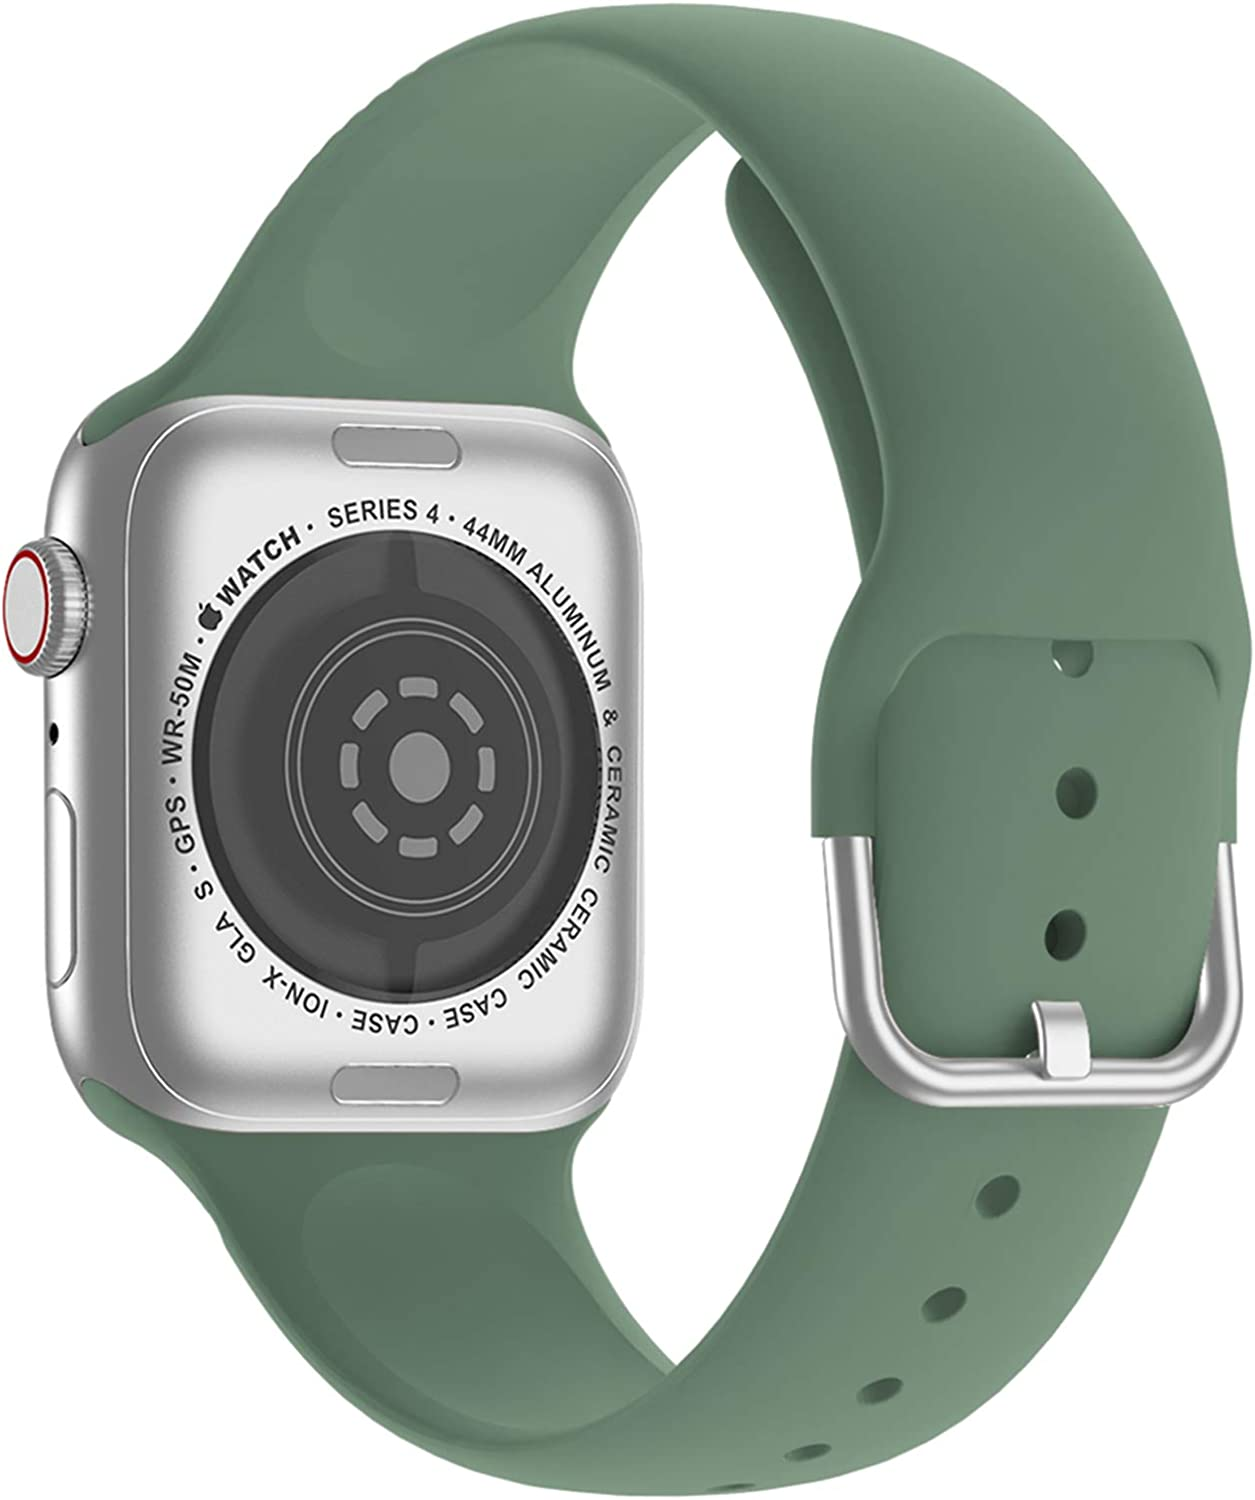 Doasuwish Compatible with Apple Watch Bands 38mm 40mm Series 3 Series 5, Silicone Soft Sport iWatch Bands 38mm 40mm Womens Compatible for iWatch Apple Watch SE Series 6 5 4 3 2 1, Pine Green